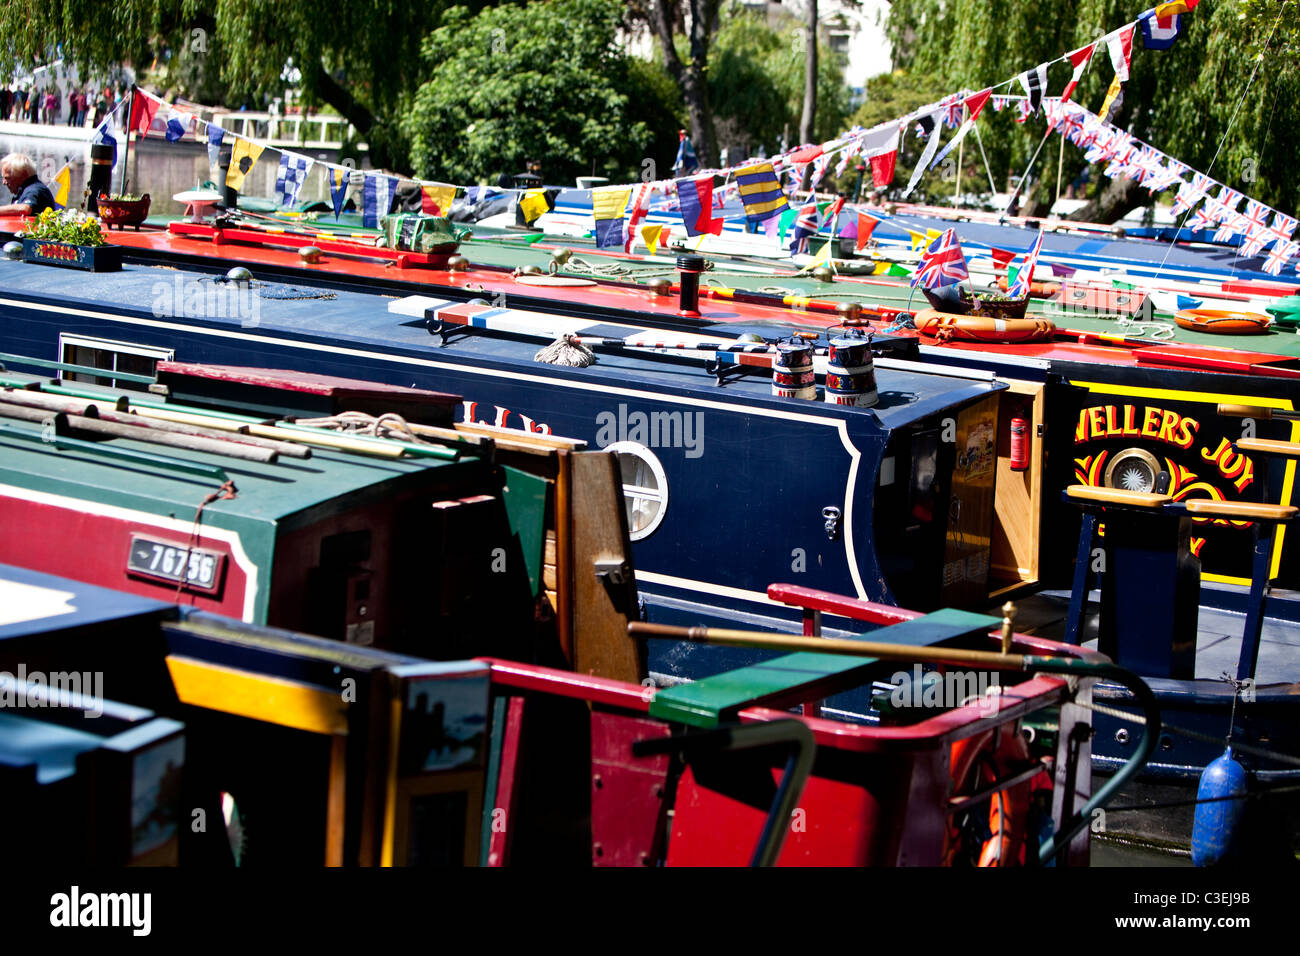 Narrowboats docked on Regent's Canal at Little Venice, London, England, UK - Stock Image